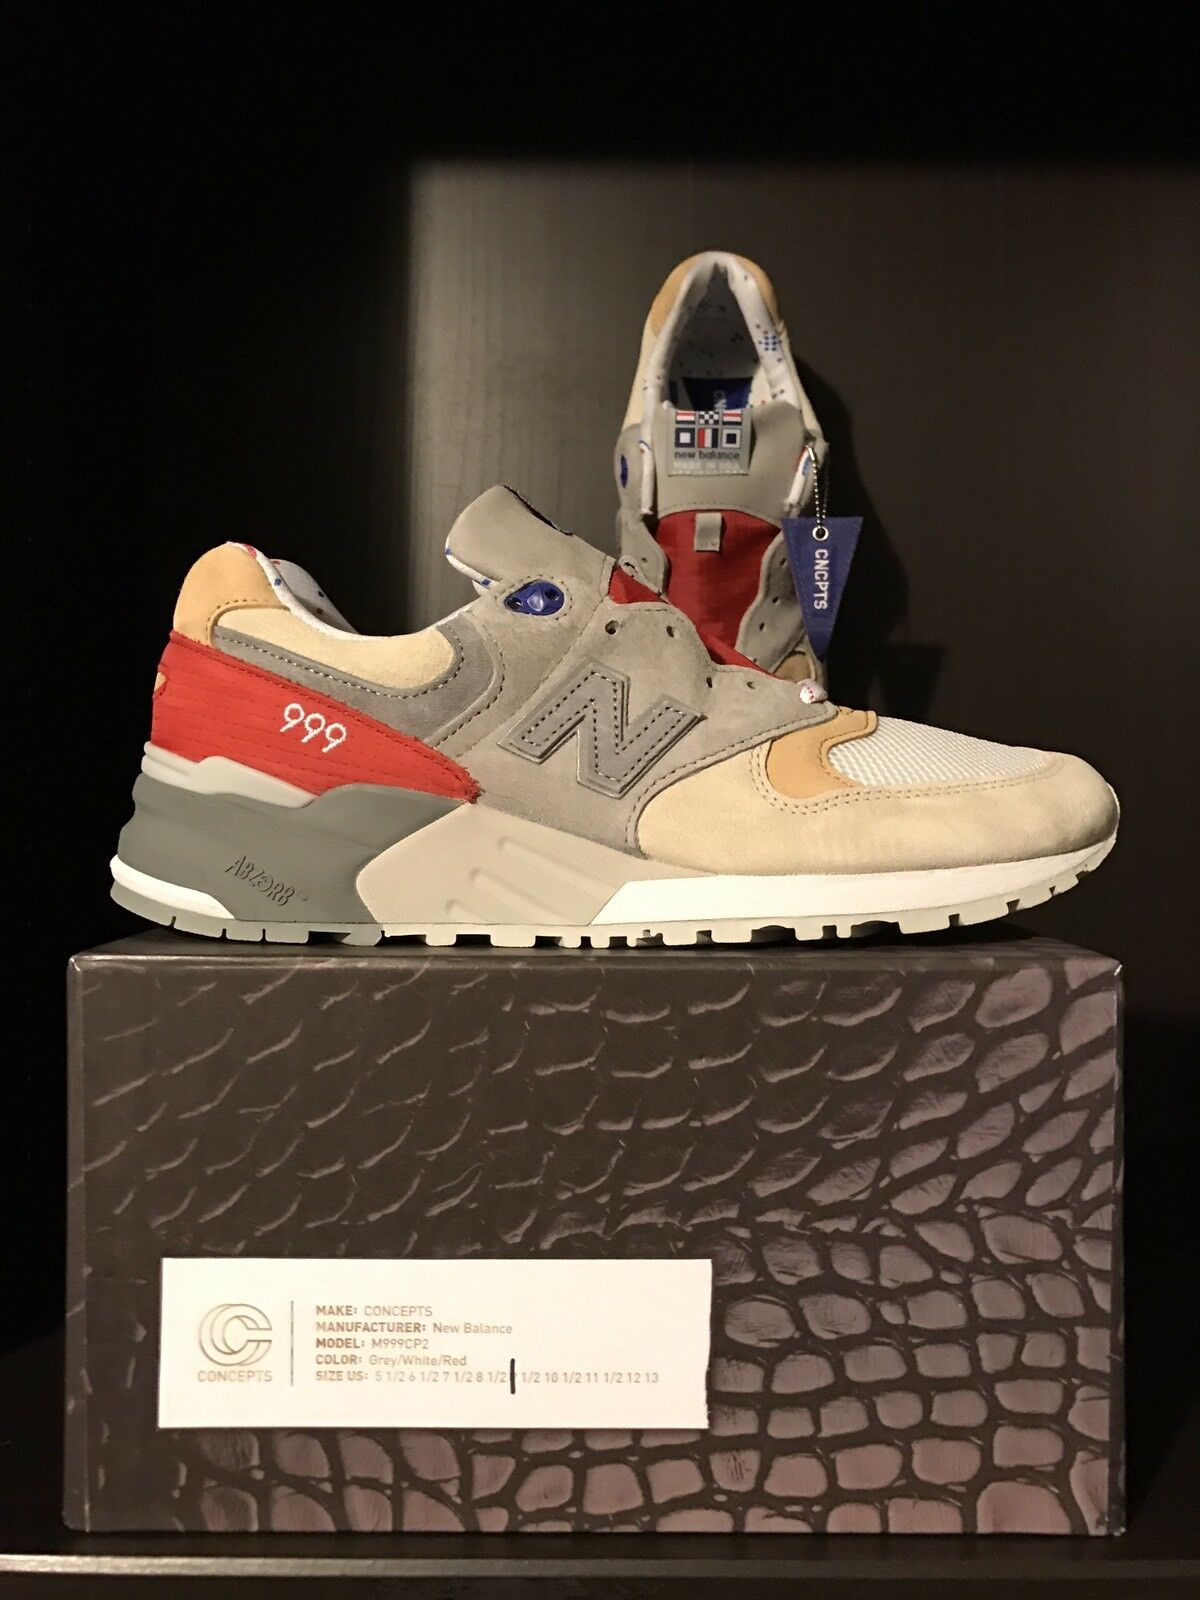 2018 Concepts/Cncpts X 2018 Hyannis/New Balance Kennedy  TALLA TALLA  9 432f79